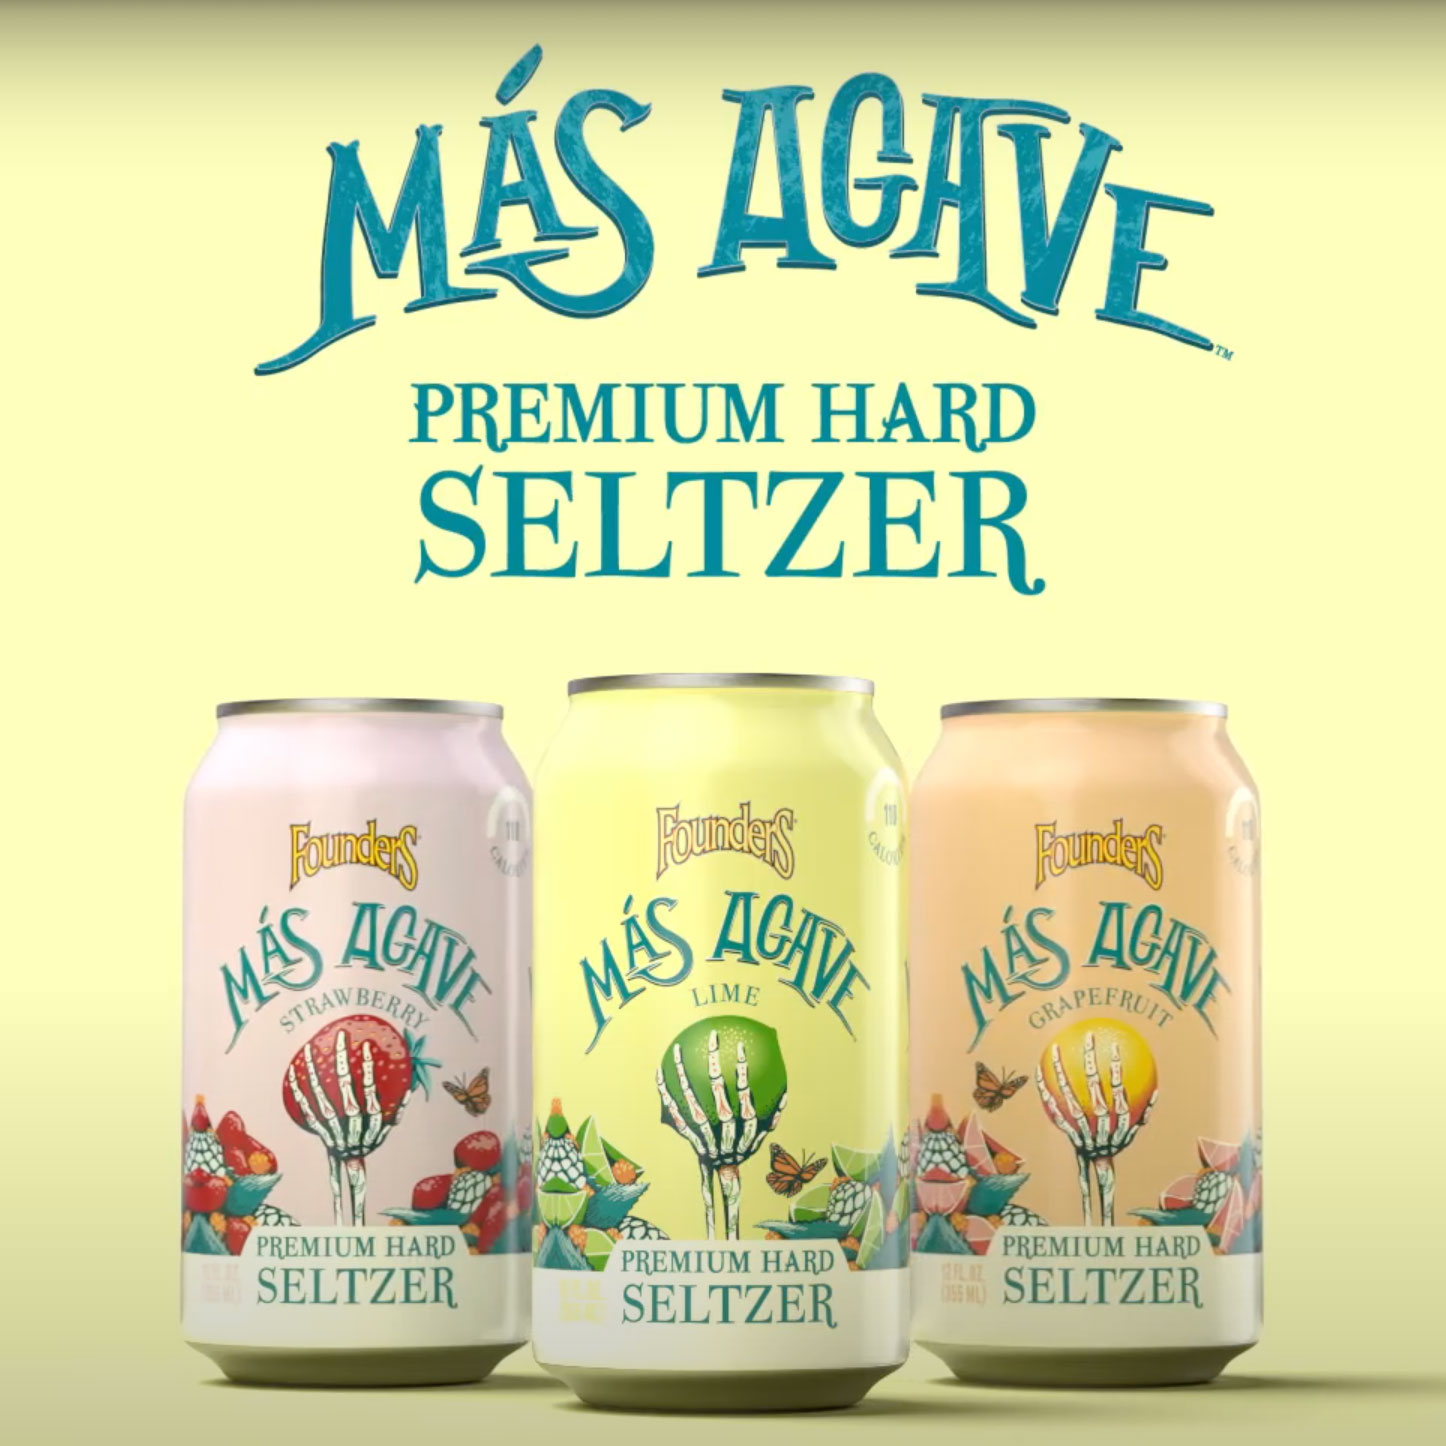 Three cans of mas agave premium hard seltzer with text above